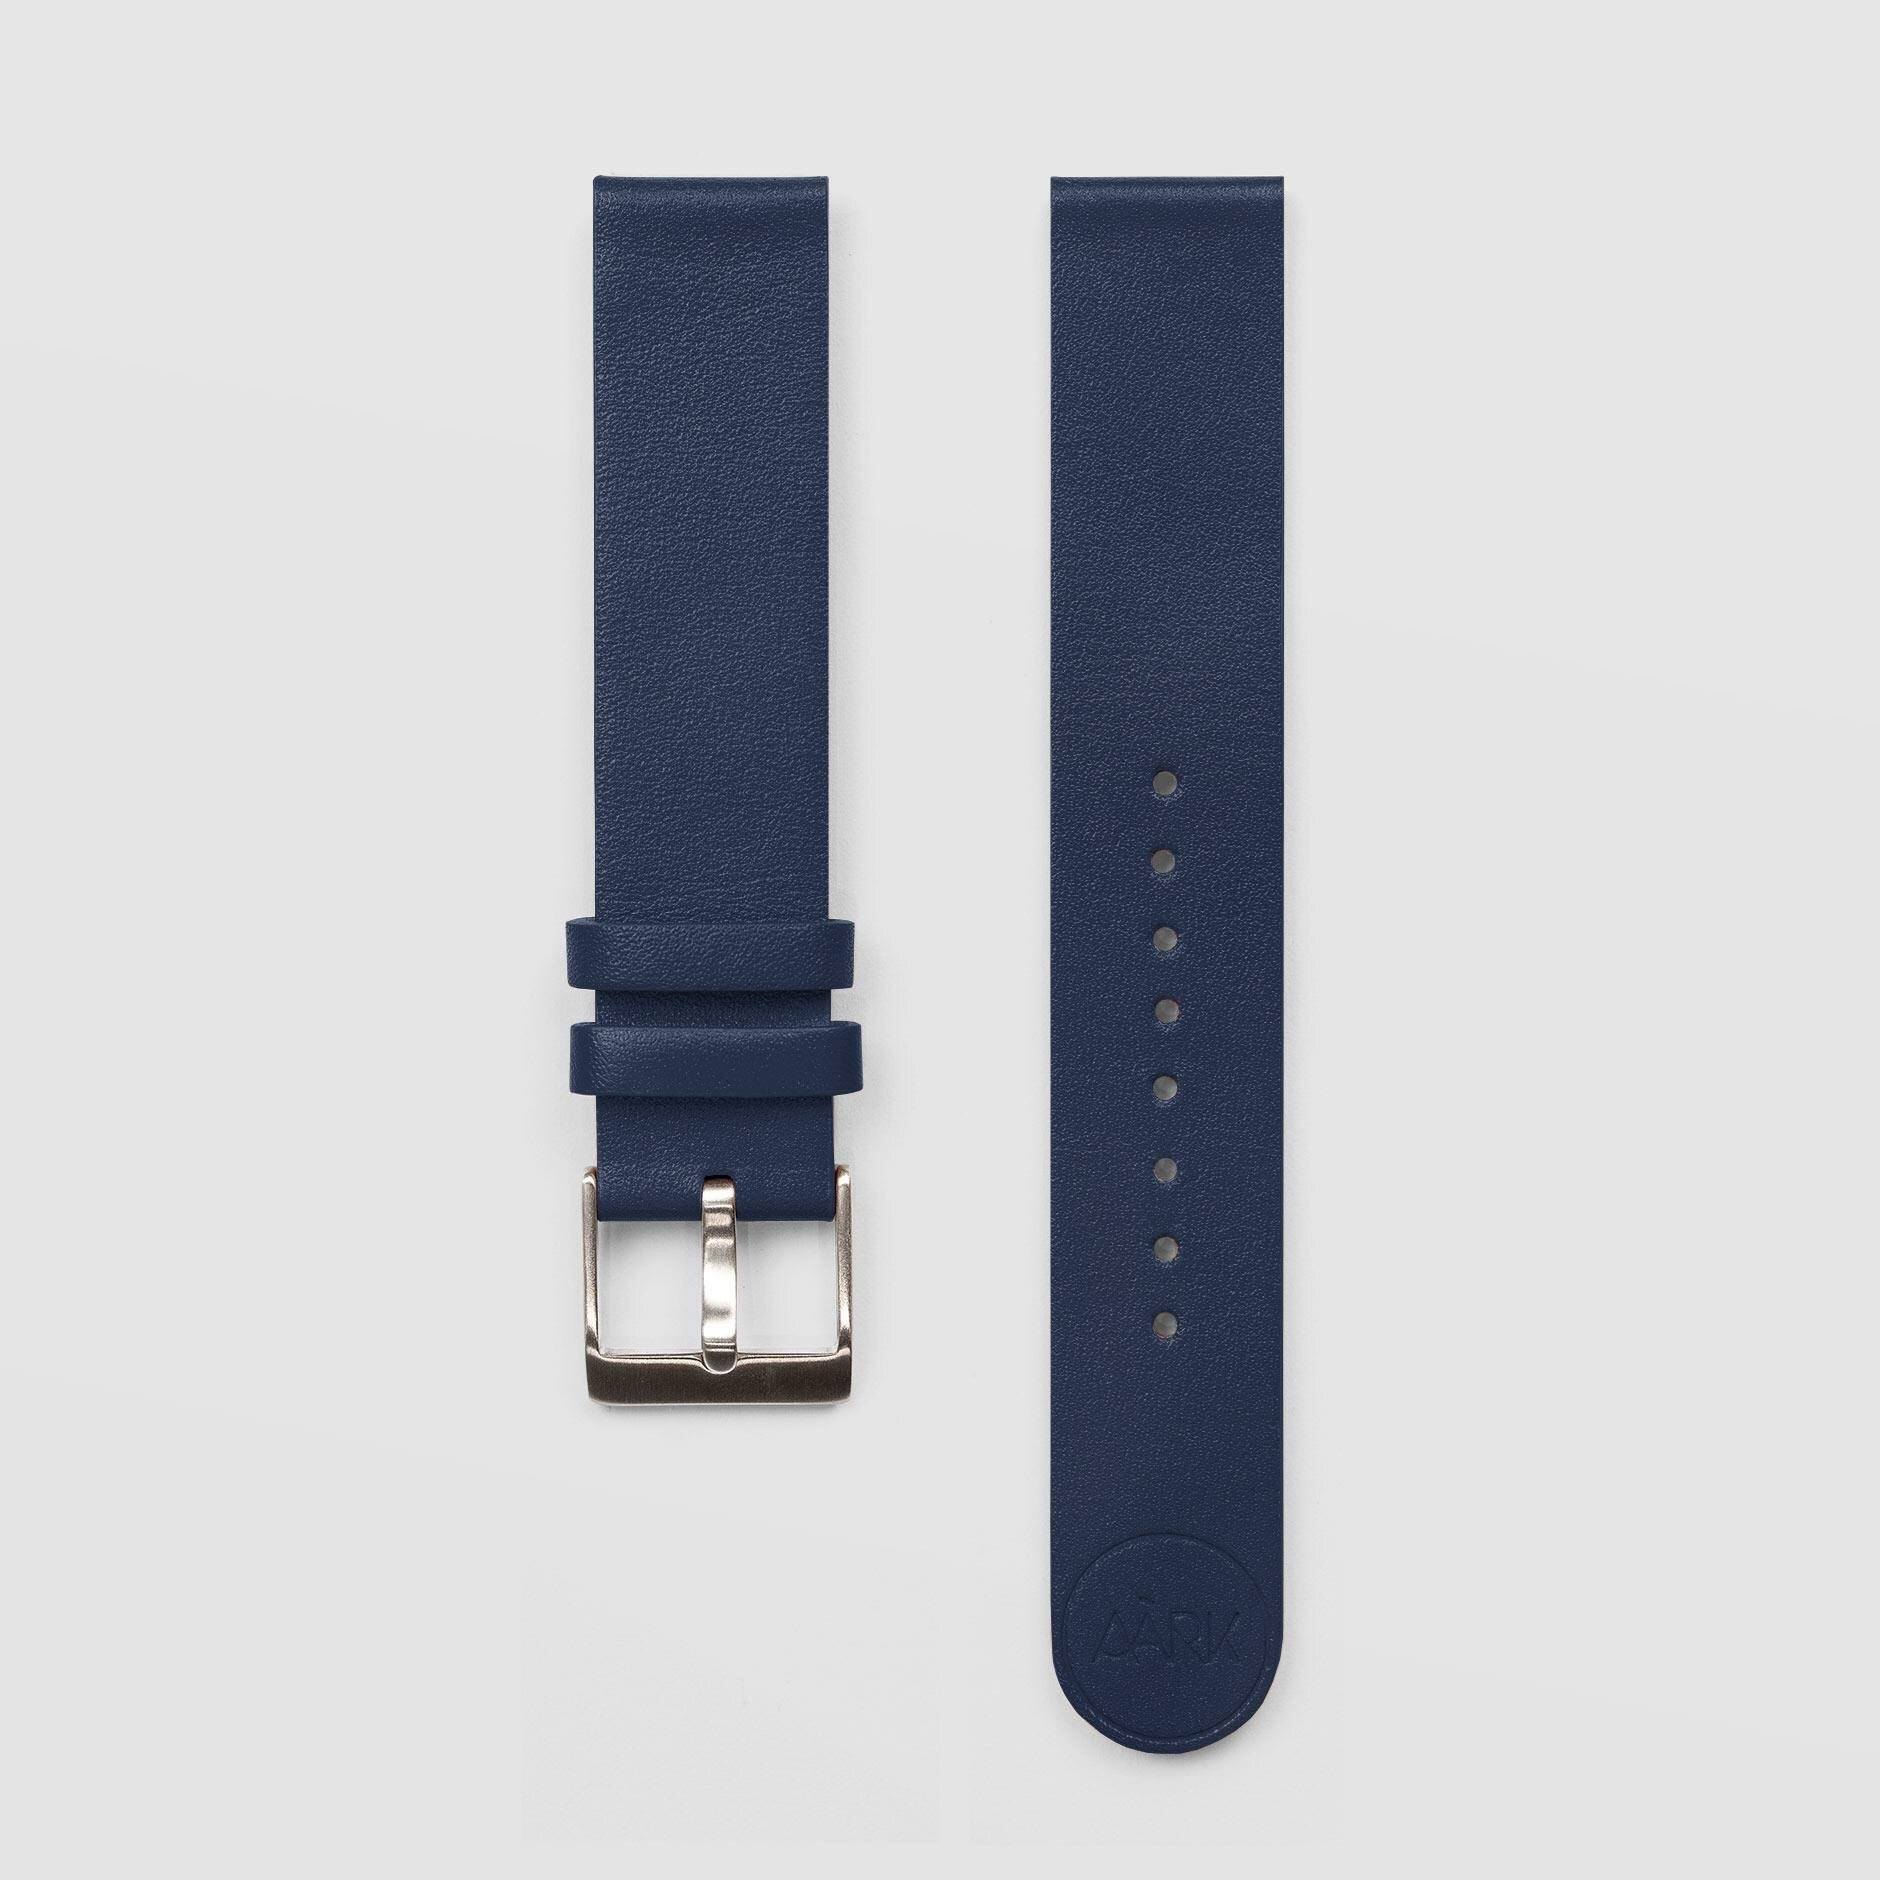 Navy Watch Strap 18mm Watch Strap AÃRK Collective - der ZEITGEIST